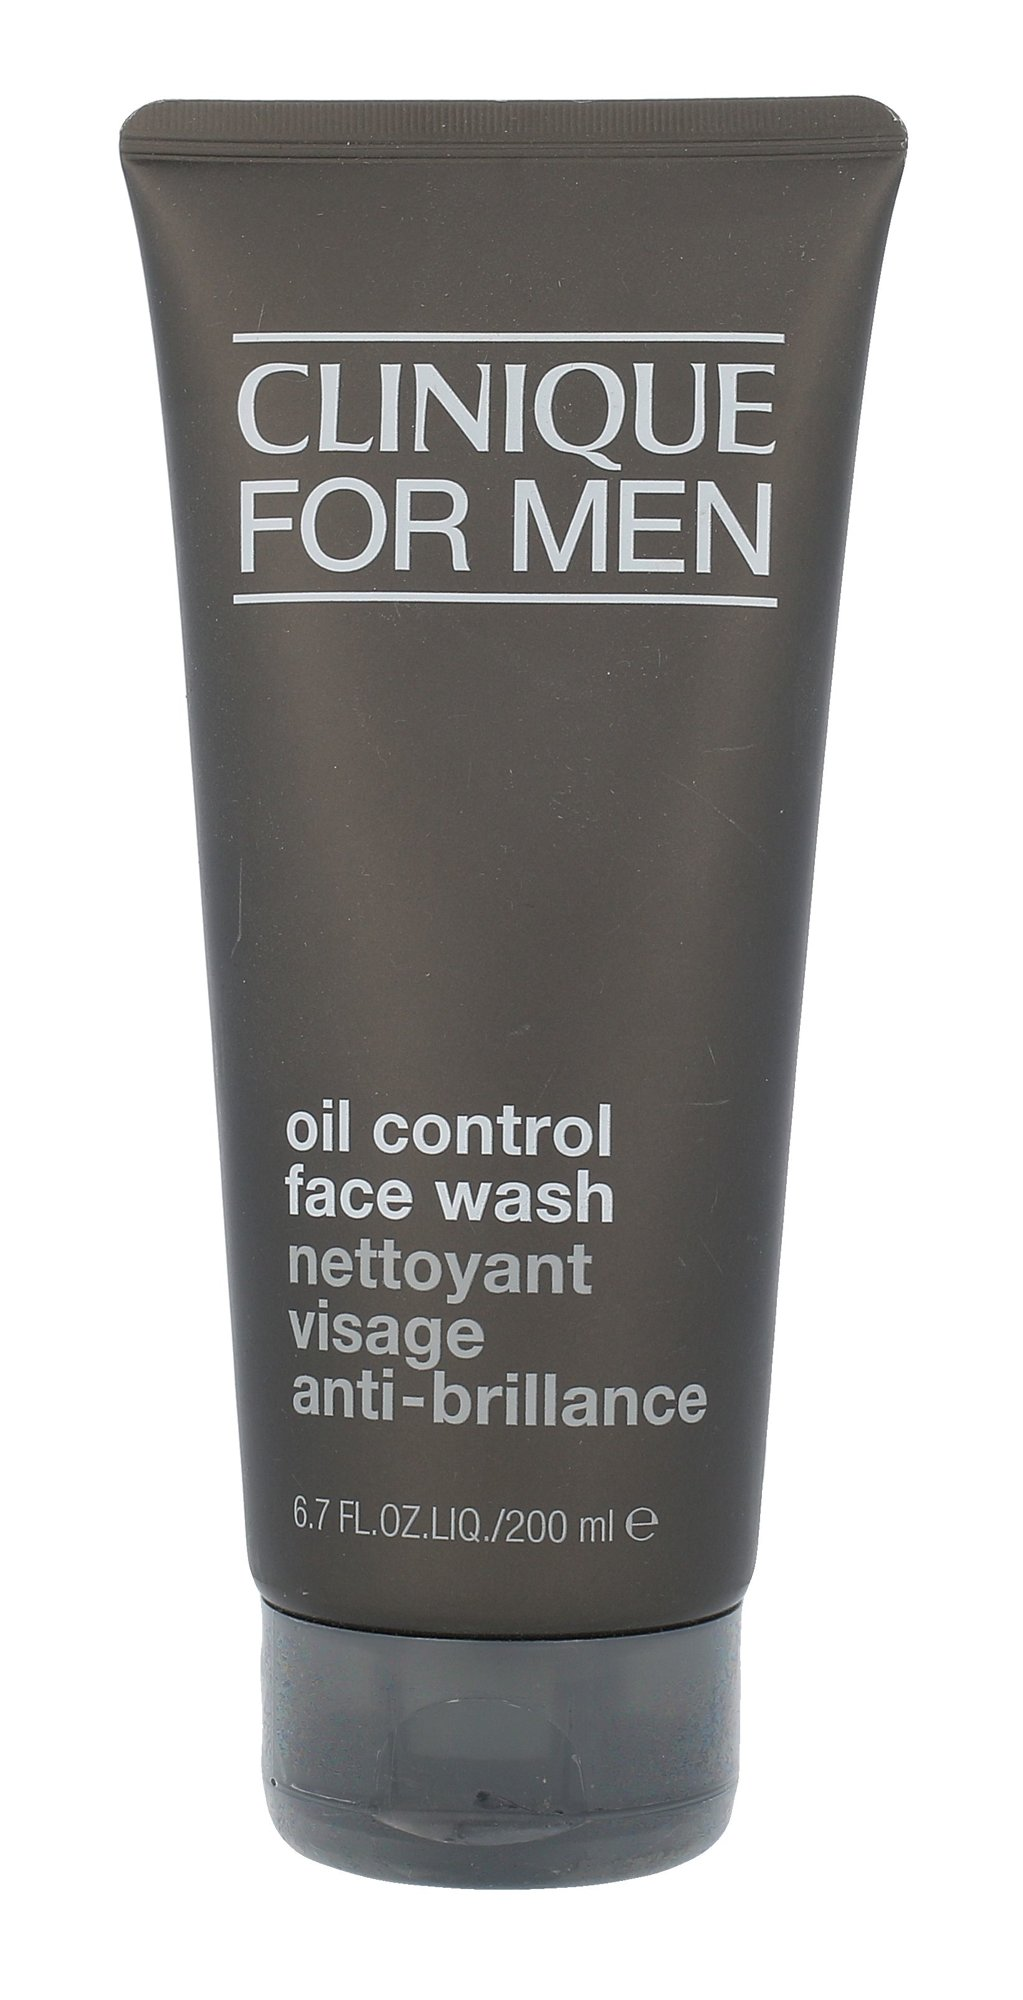 Clinique For Men Cosmetic 200ml  Oil Control Face Wash